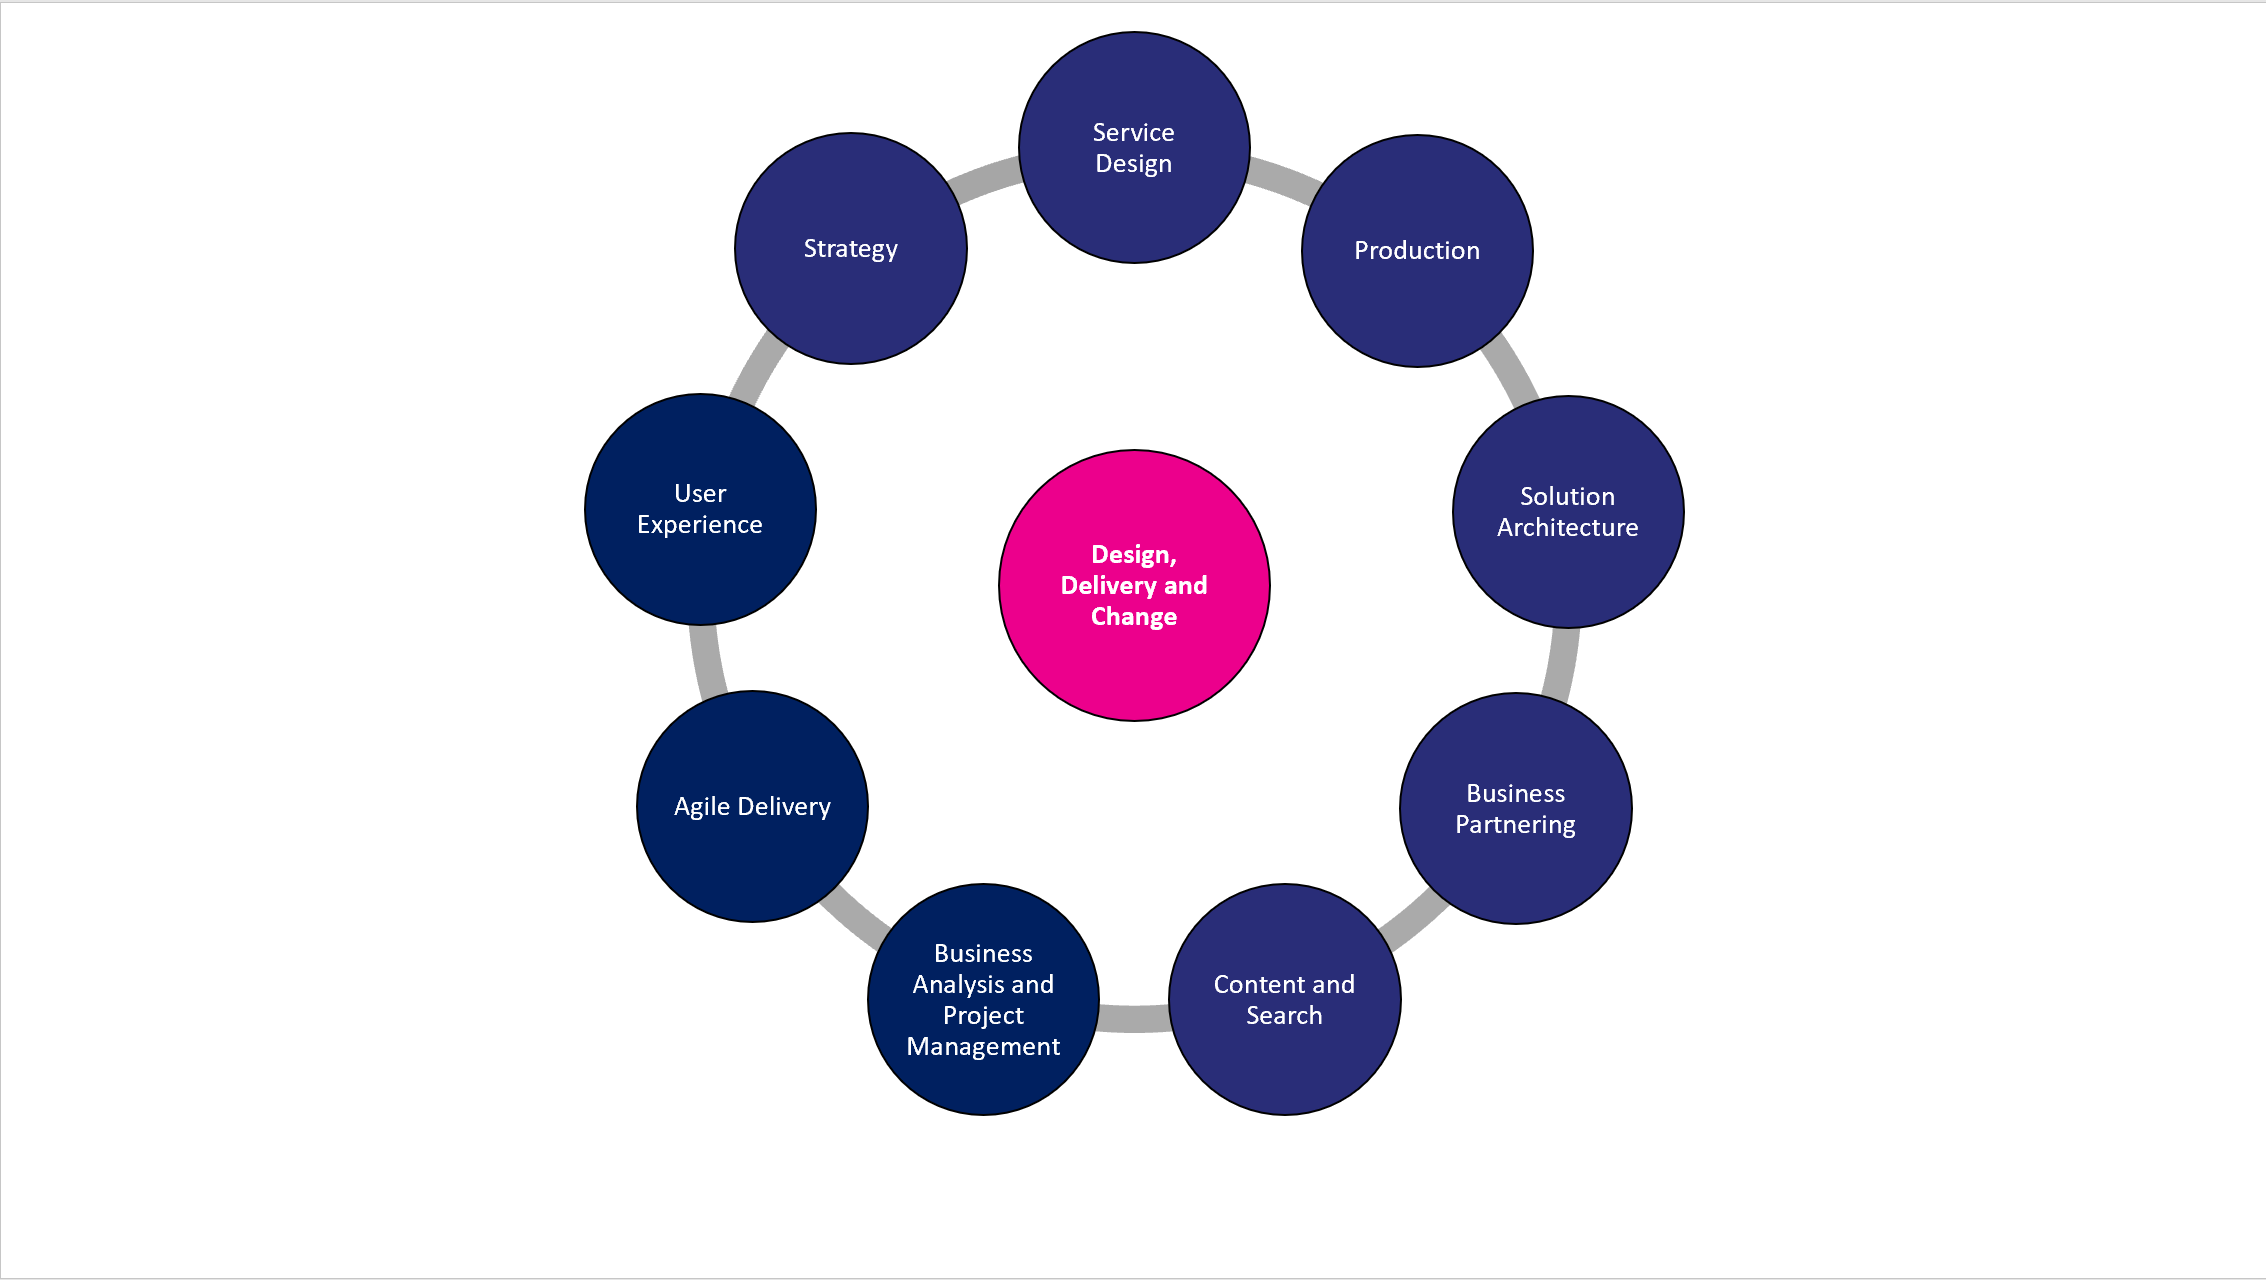 The Design, Delivery and Change team consists of: Service Design, Digital Production, Solution Architecture, User Experience, Strategy, Agile Delivery, Business Partnering, Content and Search and Business Analysis and Project Management.